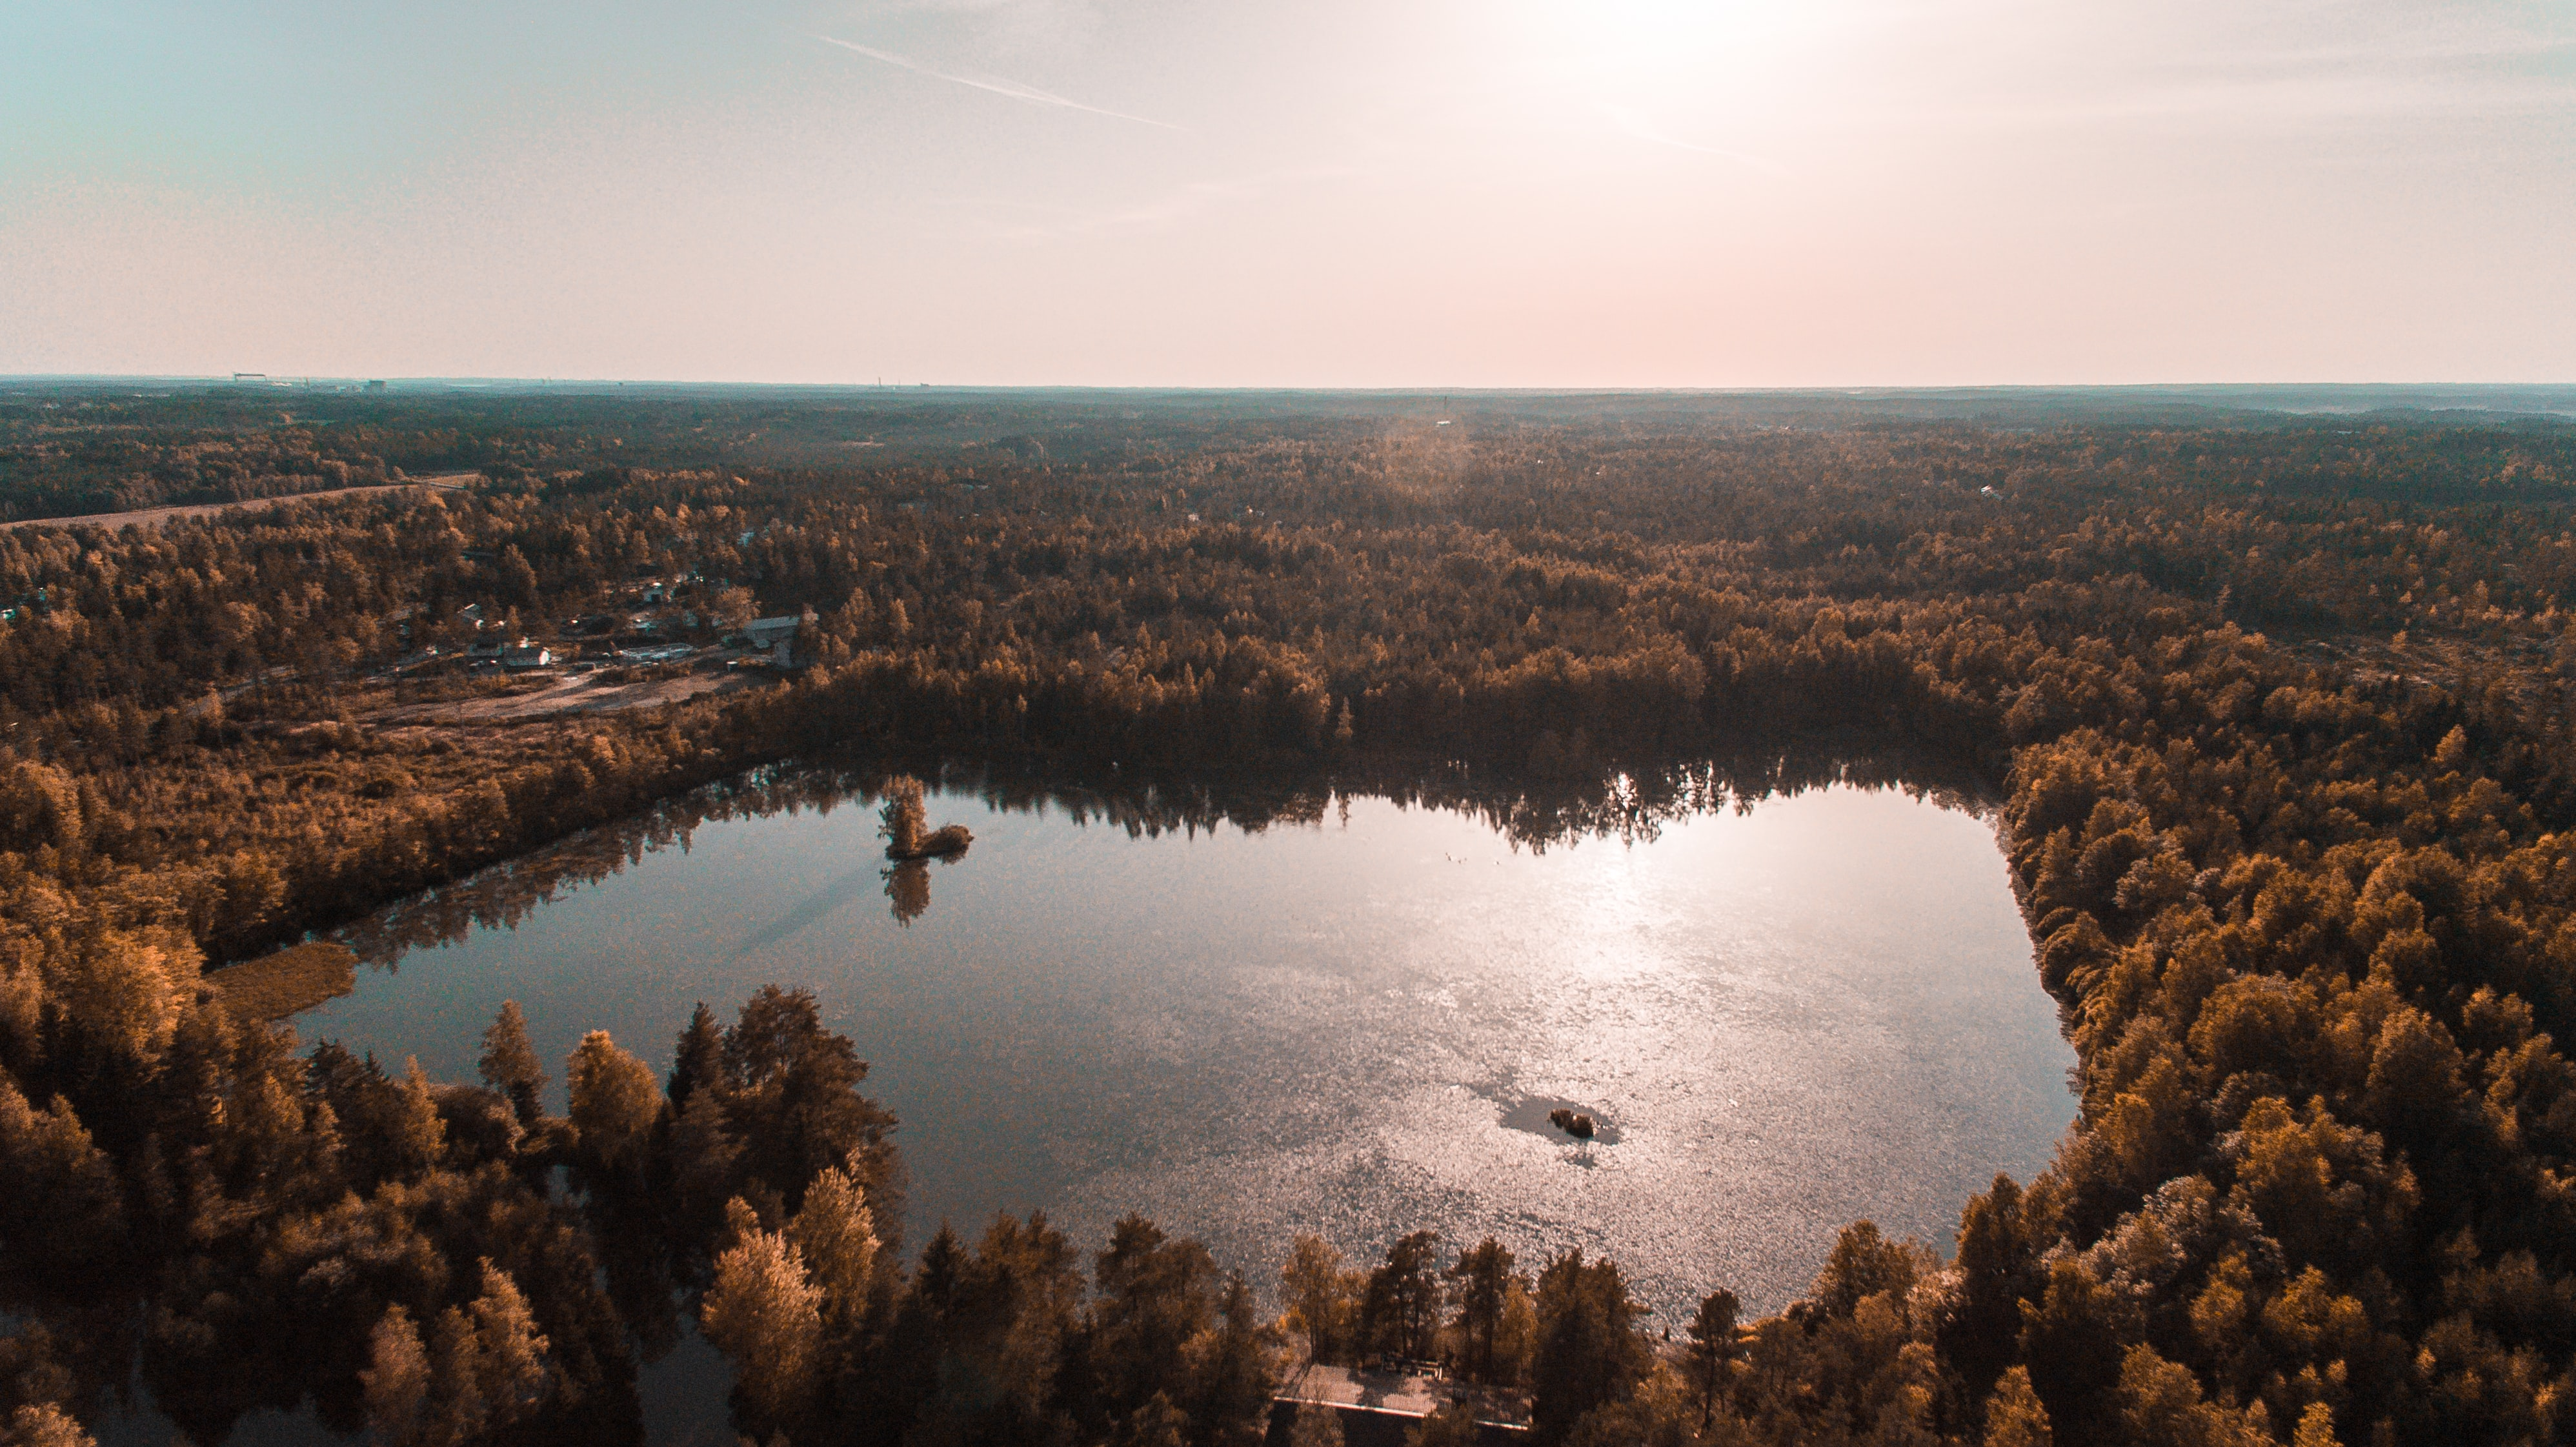 aerial view photography of calm water surrounded by trees